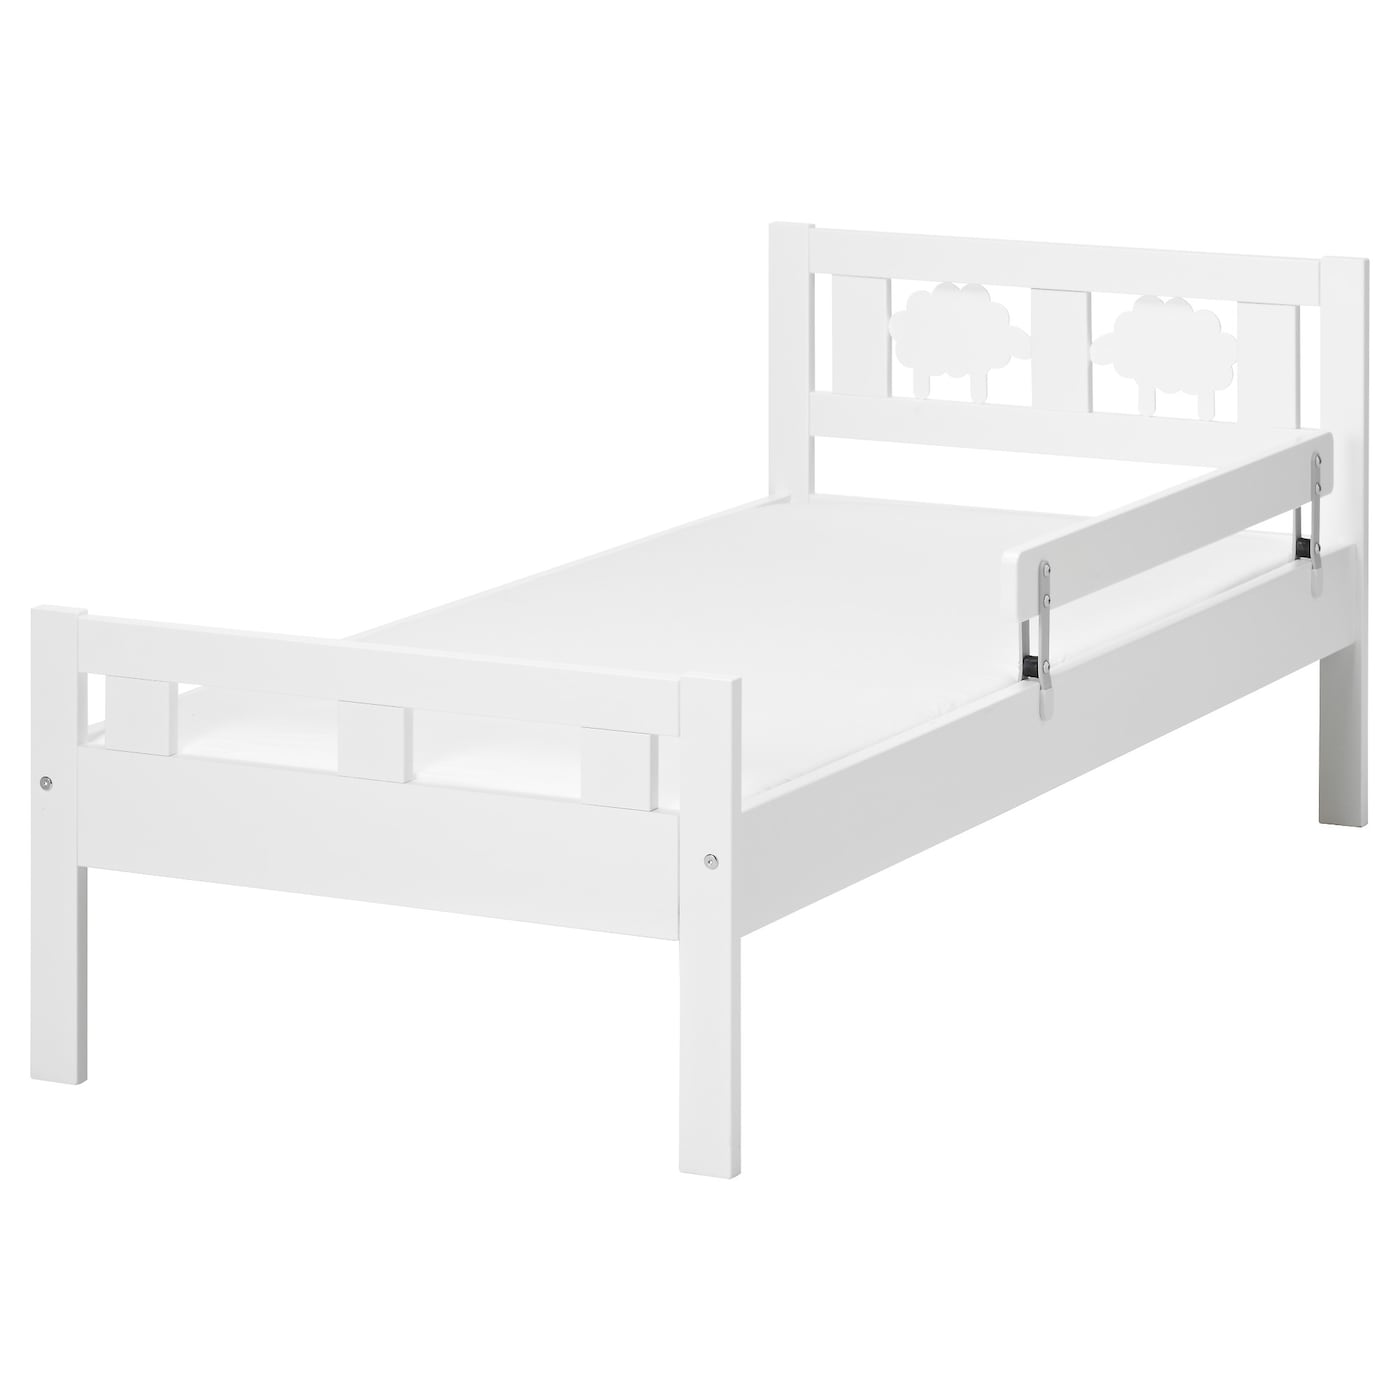 kritter bed frame with slatted bed base white 70 x 160 cm. Black Bedroom Furniture Sets. Home Design Ideas